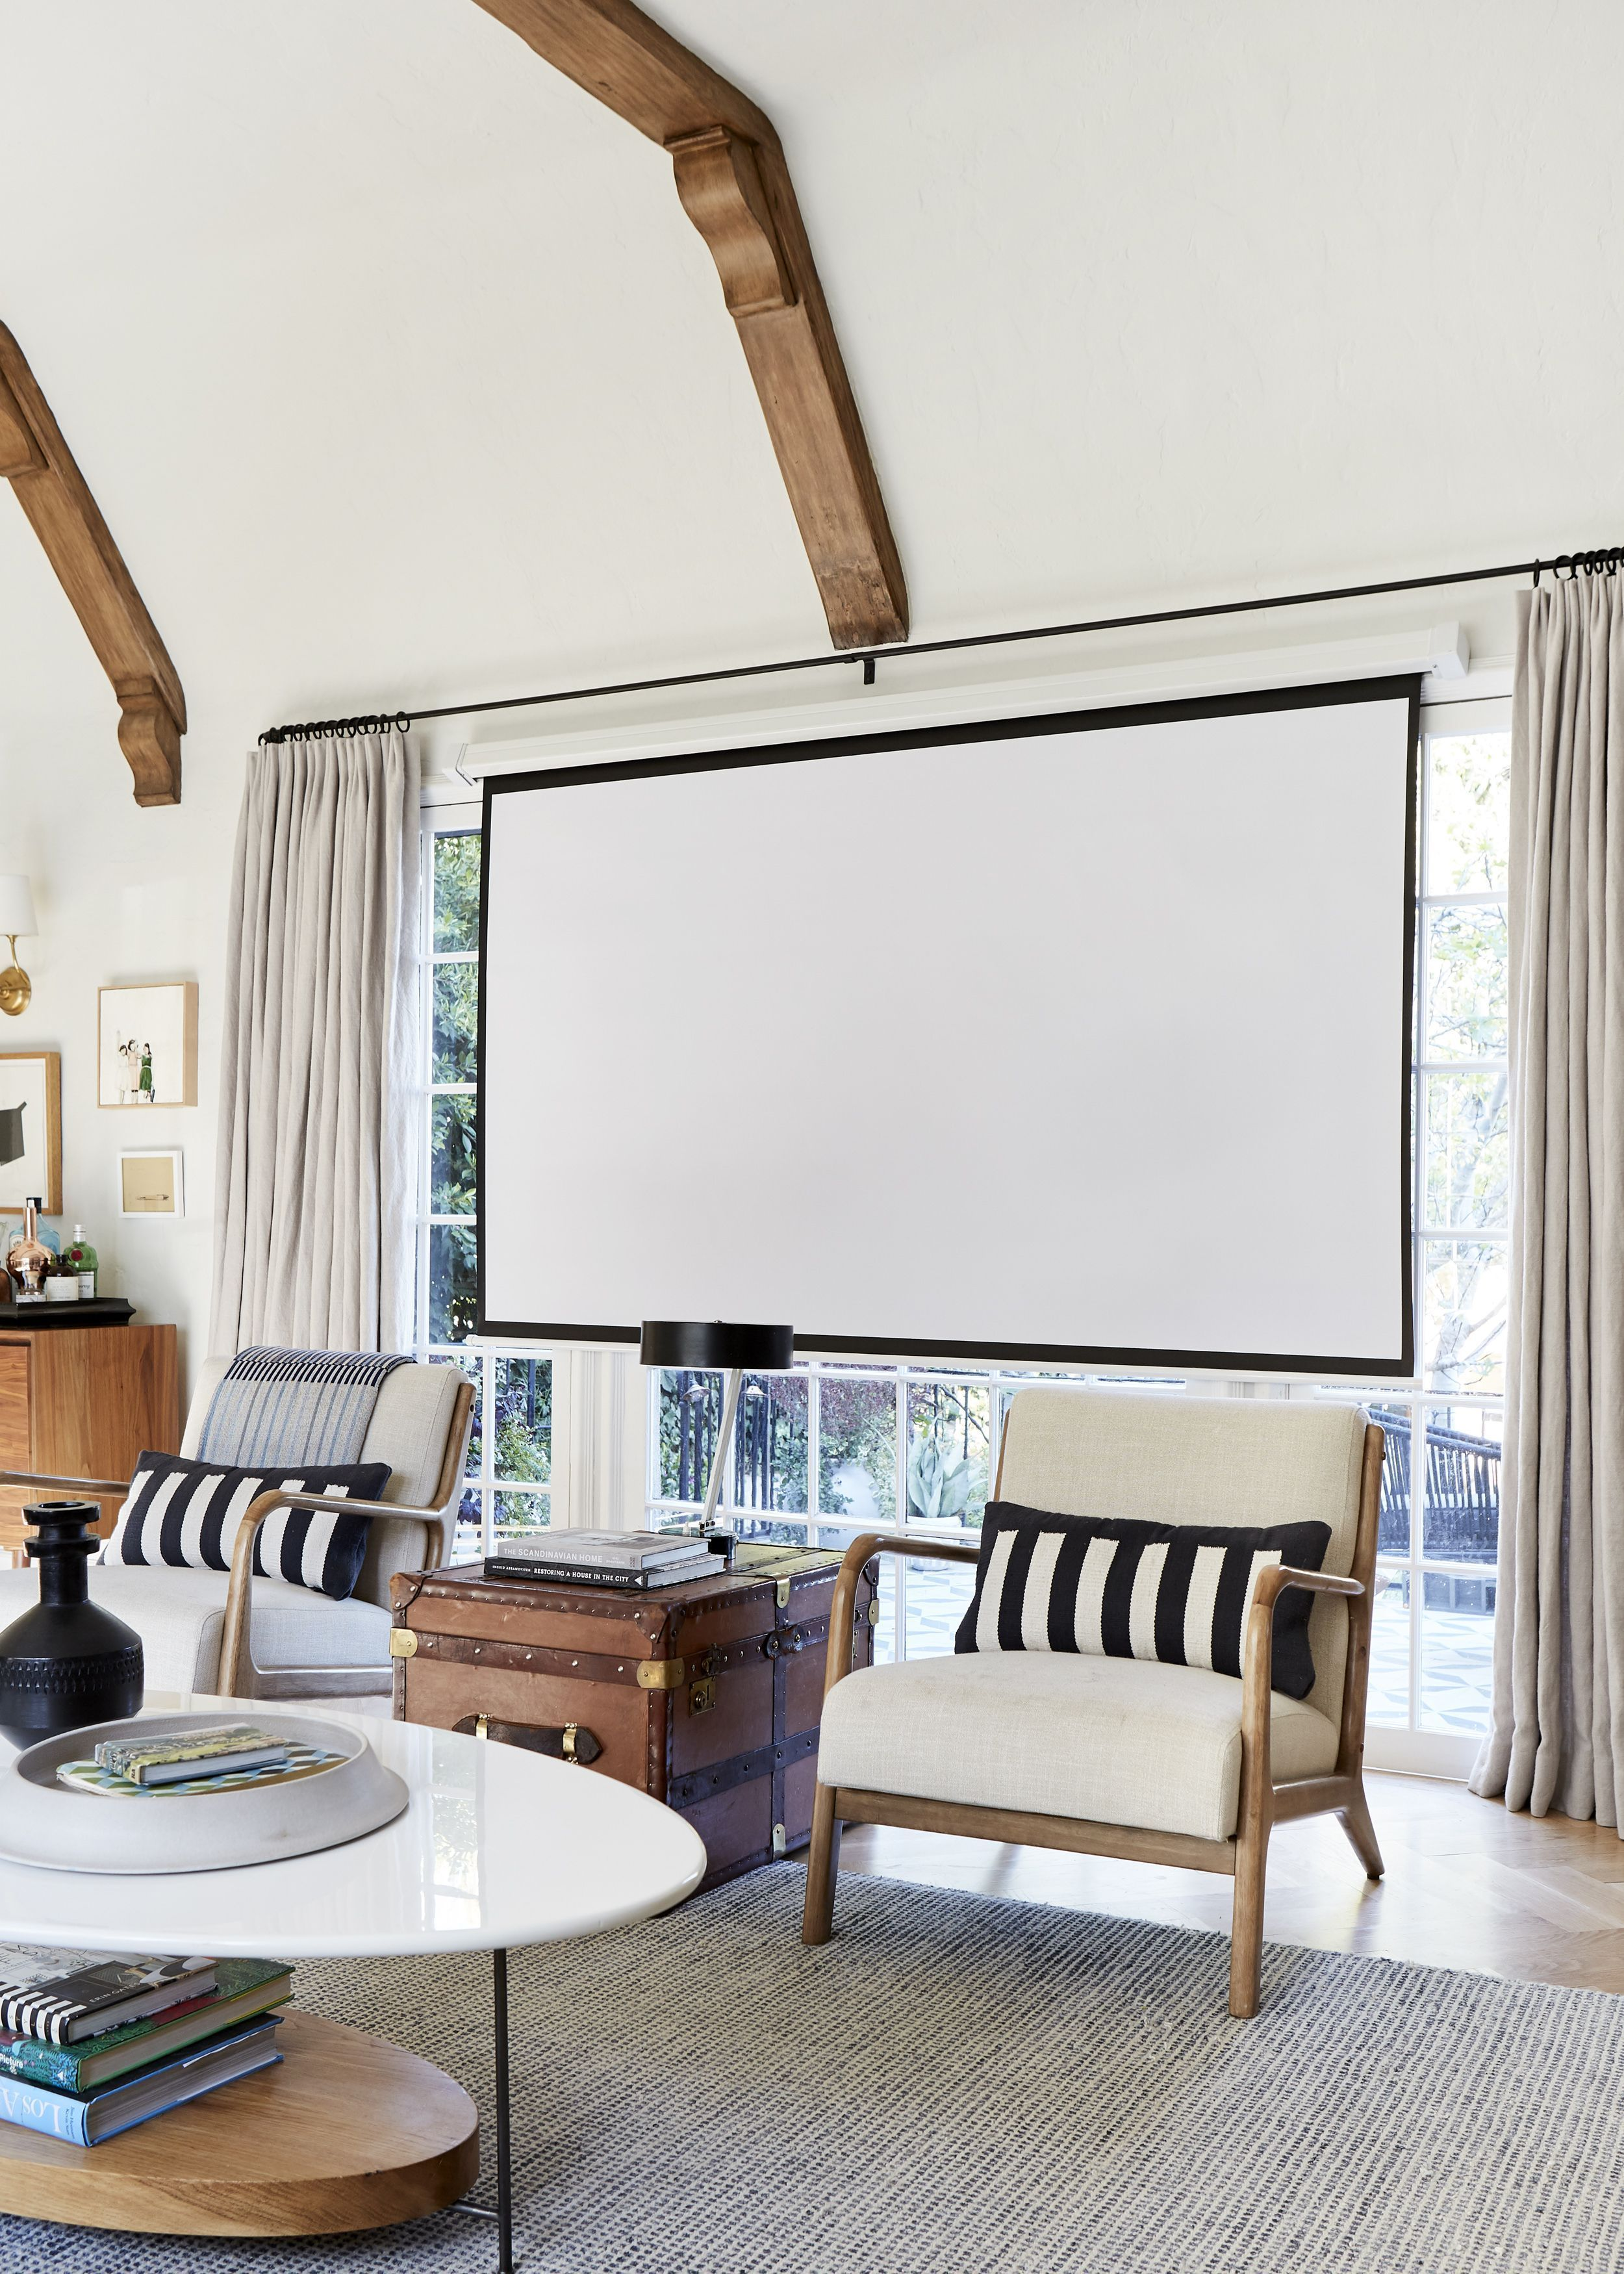 At Home Pull Down Projector Screen Home, Farm house